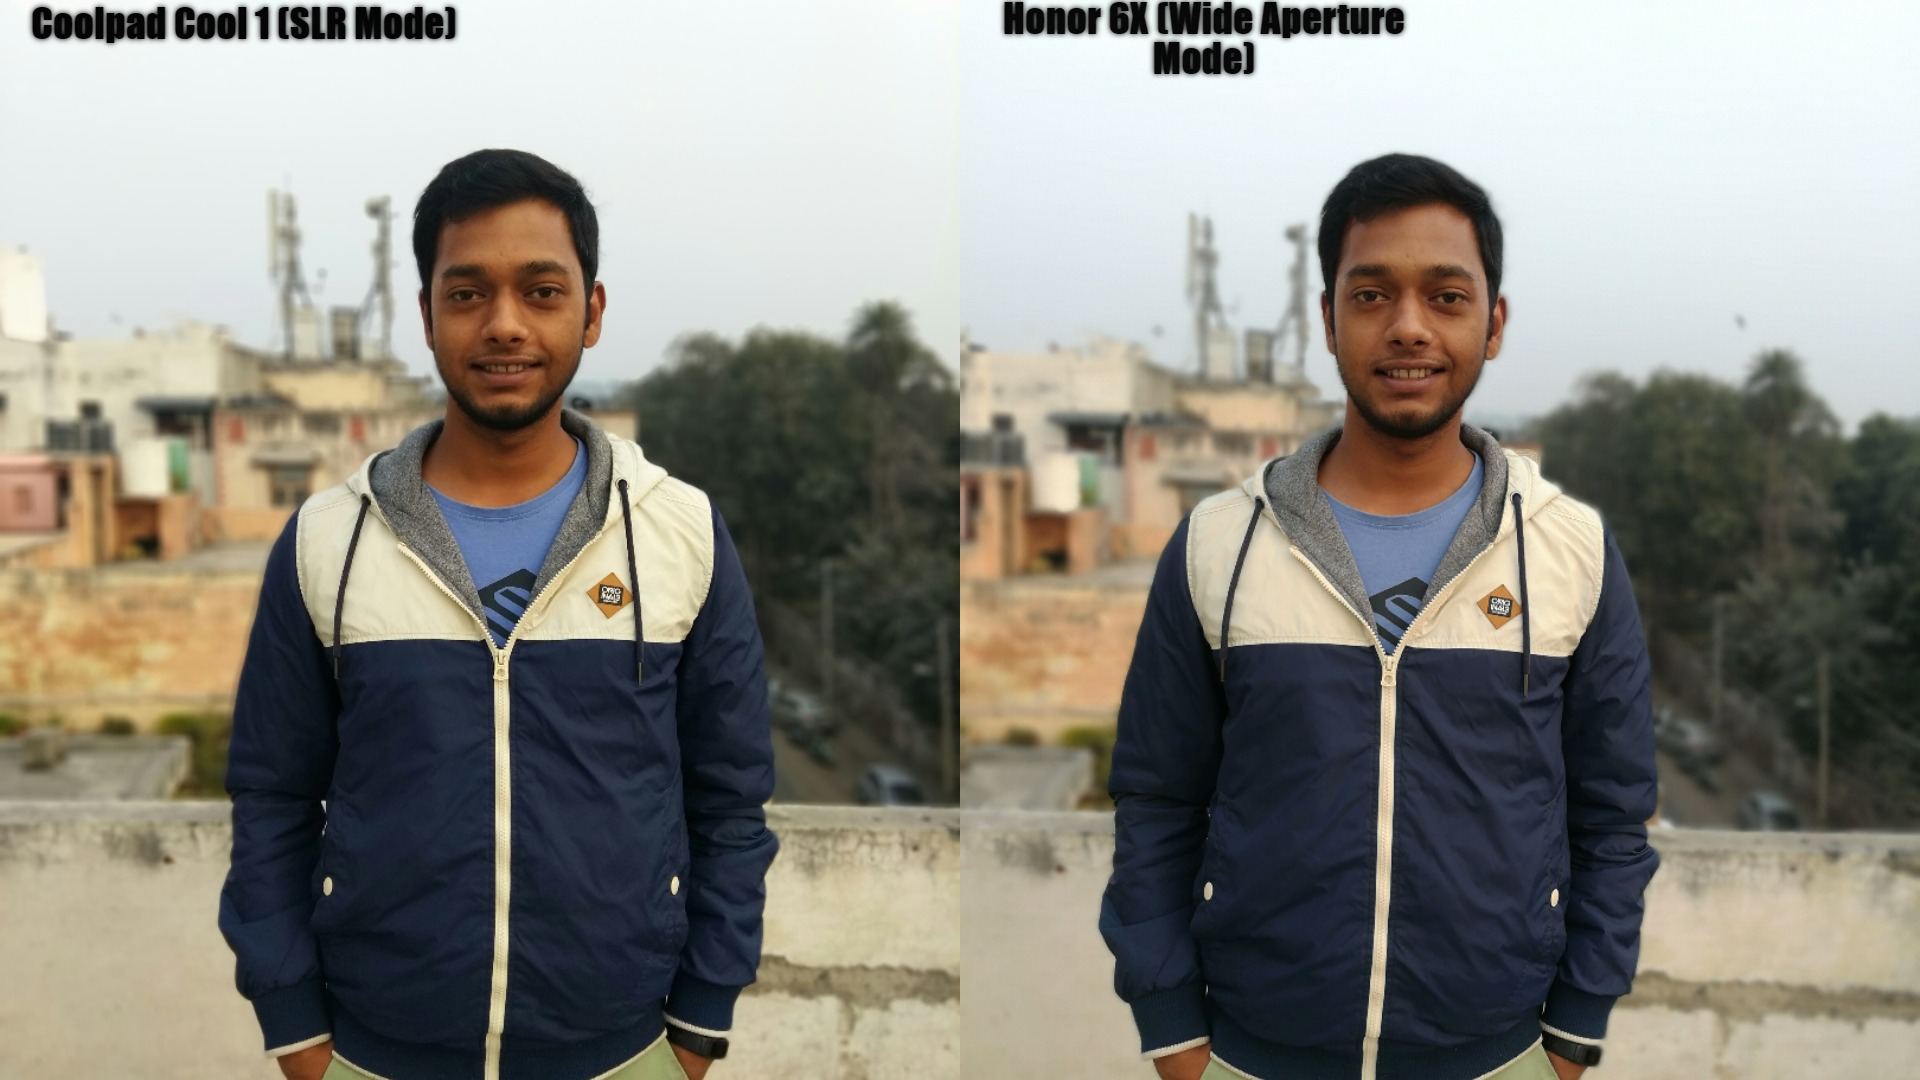 Coolpad Cool 1 Vs Honor 6x Camera Comparison Review And Photo Samples